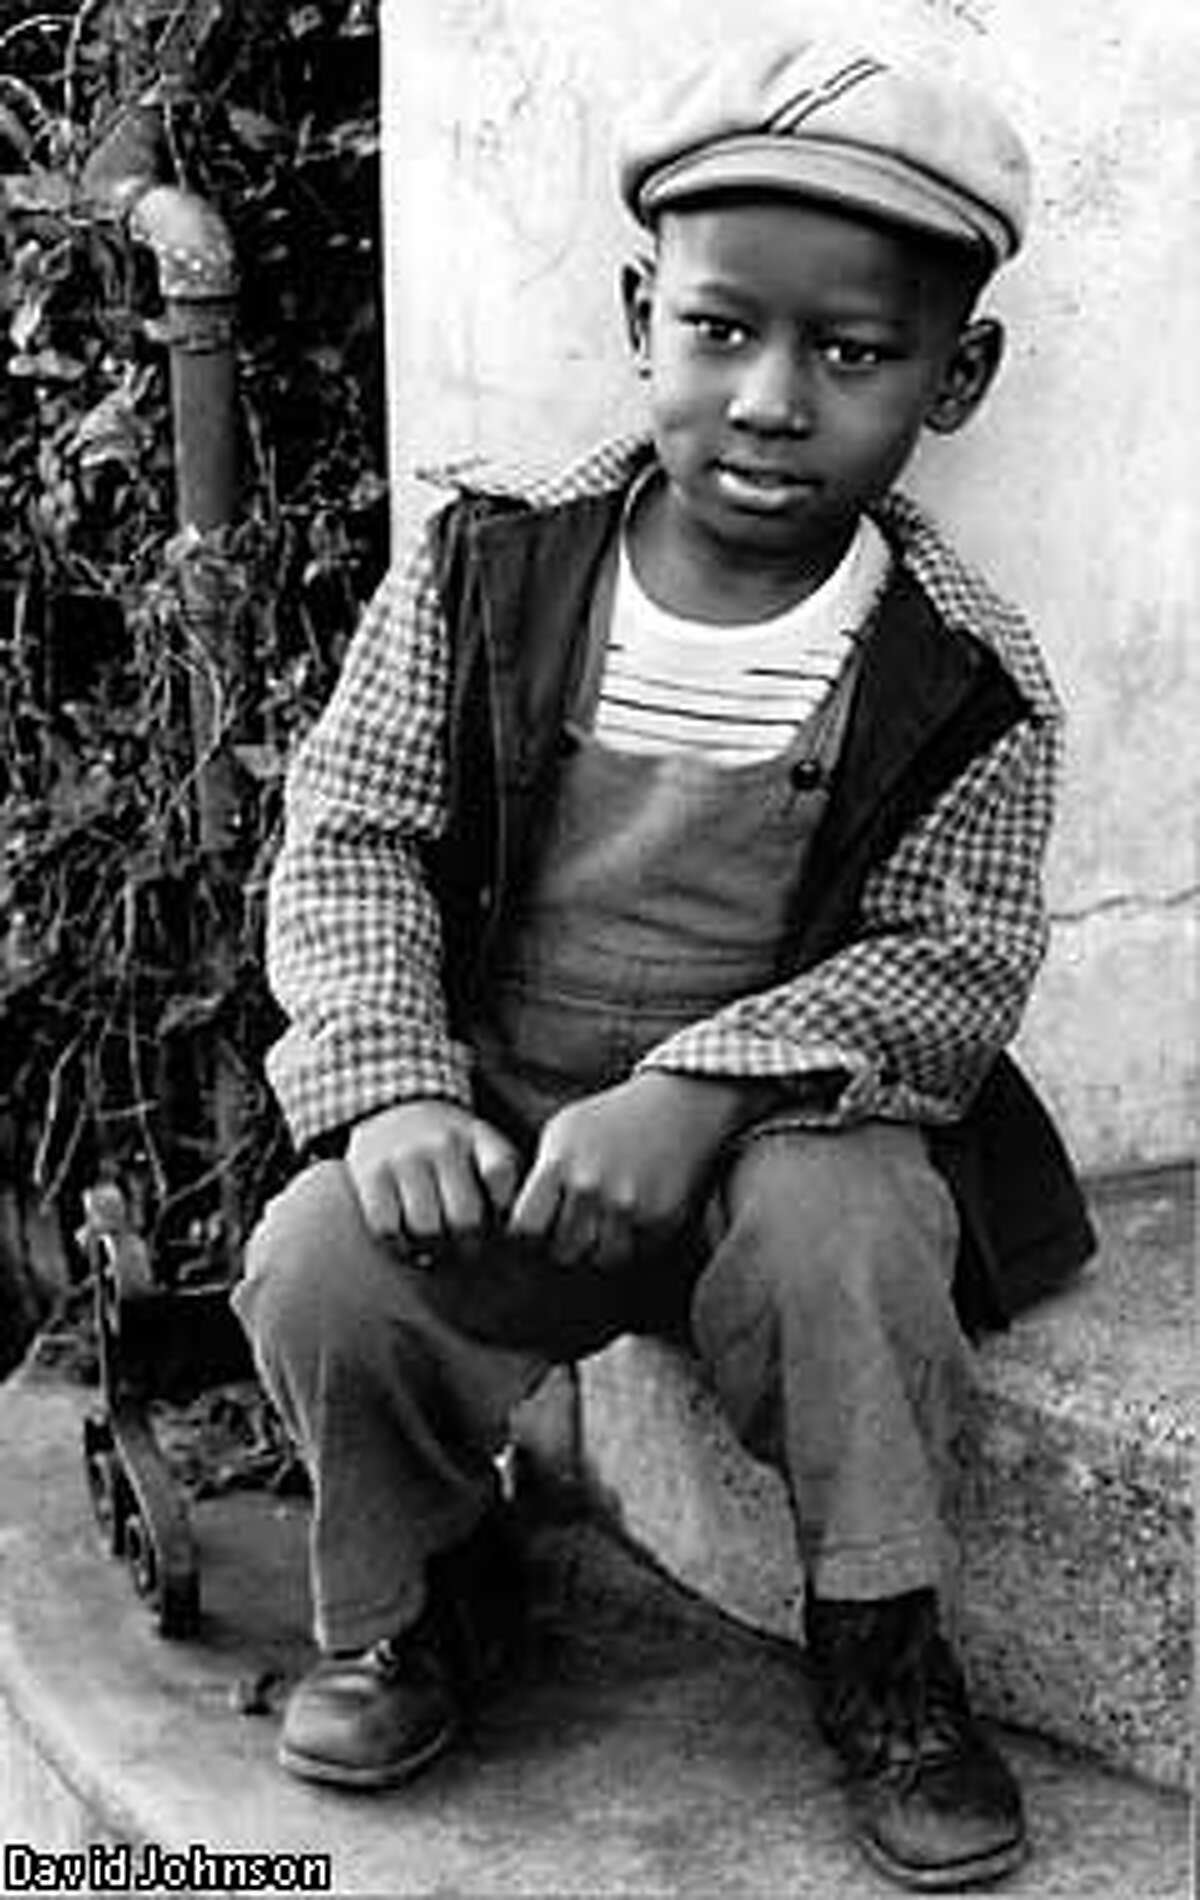 Clarence, a 5-year-old boy, sits on the steps of a church on O'Farrell Street in 1947. Photo courtesy David Johnson